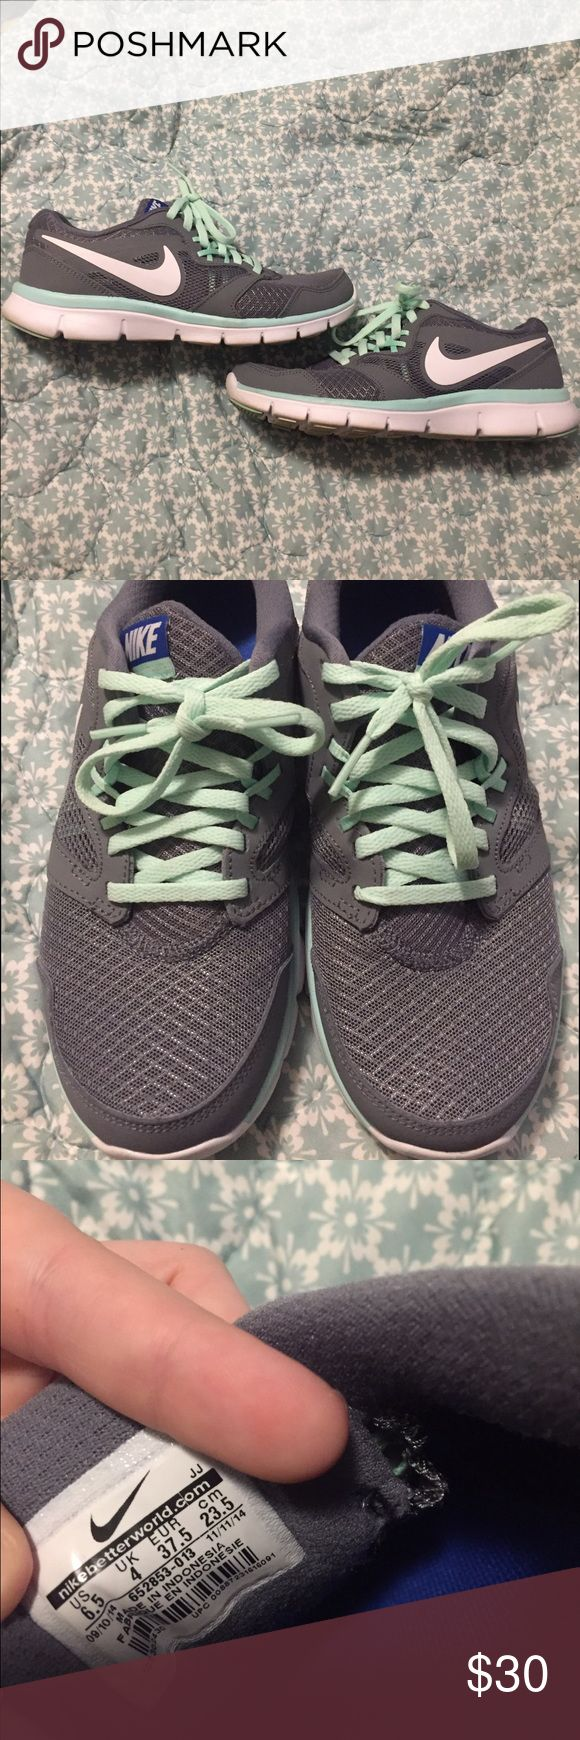 Grey and Mint Nike Size 6.5 grey and Mint women's nikes. Literally worn twice.tread on bottom is fully intact, no tears or pulling. Virtually brand new. My feet grew with my pregnancy so I'm in a 7.5 now and can't wear them. Nike Shoes Athletic Shoes